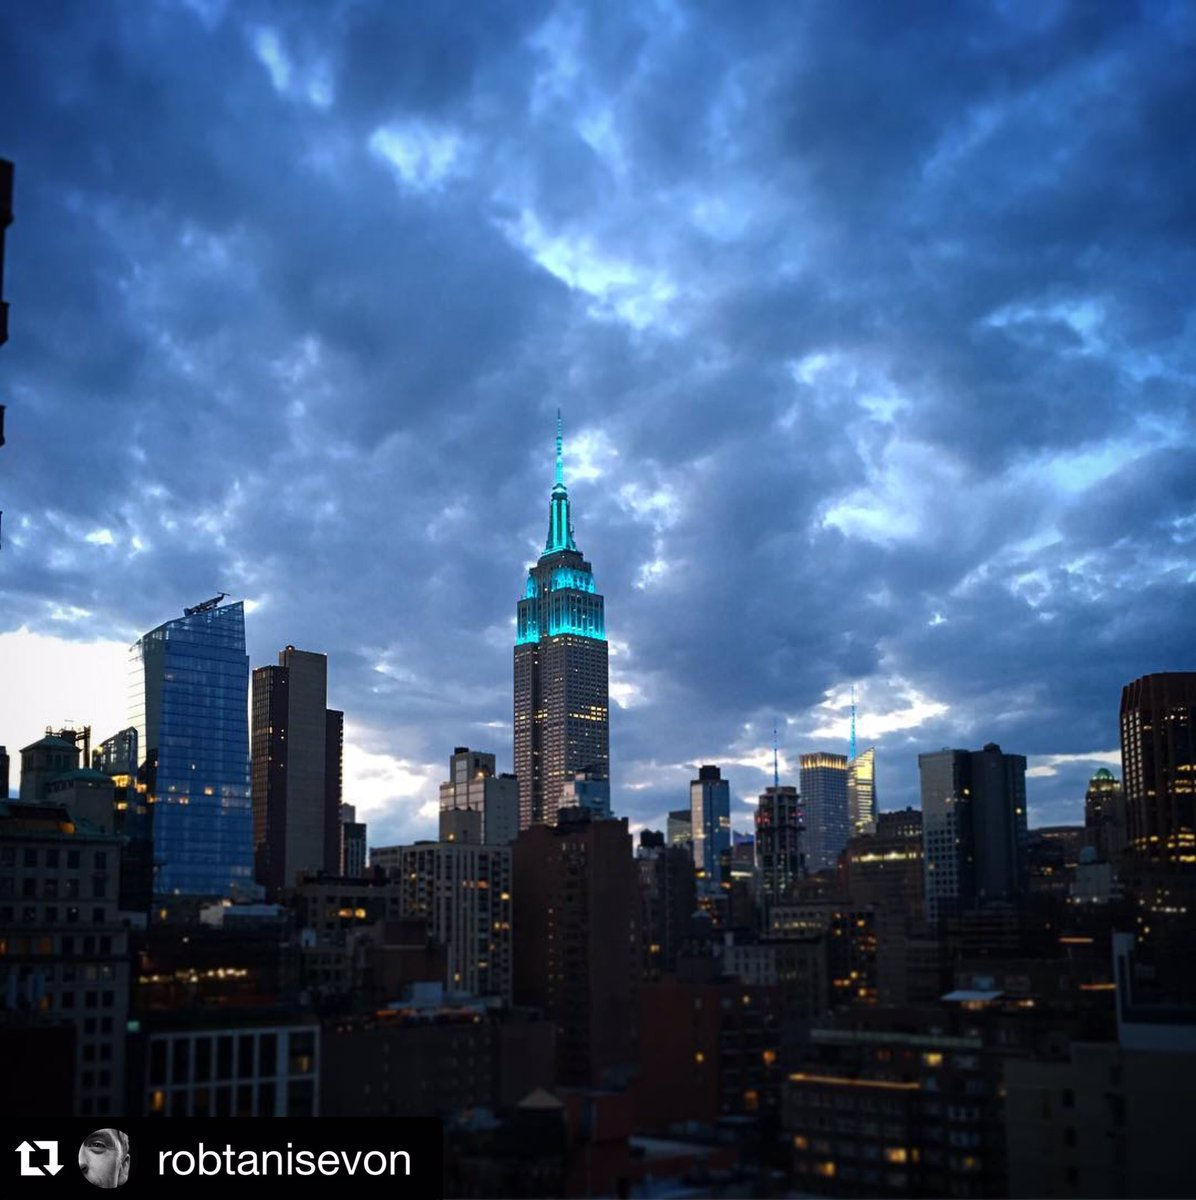 Teal lights are shining! #FoodAllergyWeek #foodallergy @EmpireStateBldg #NYC https://t.co/AahWnA8aK5